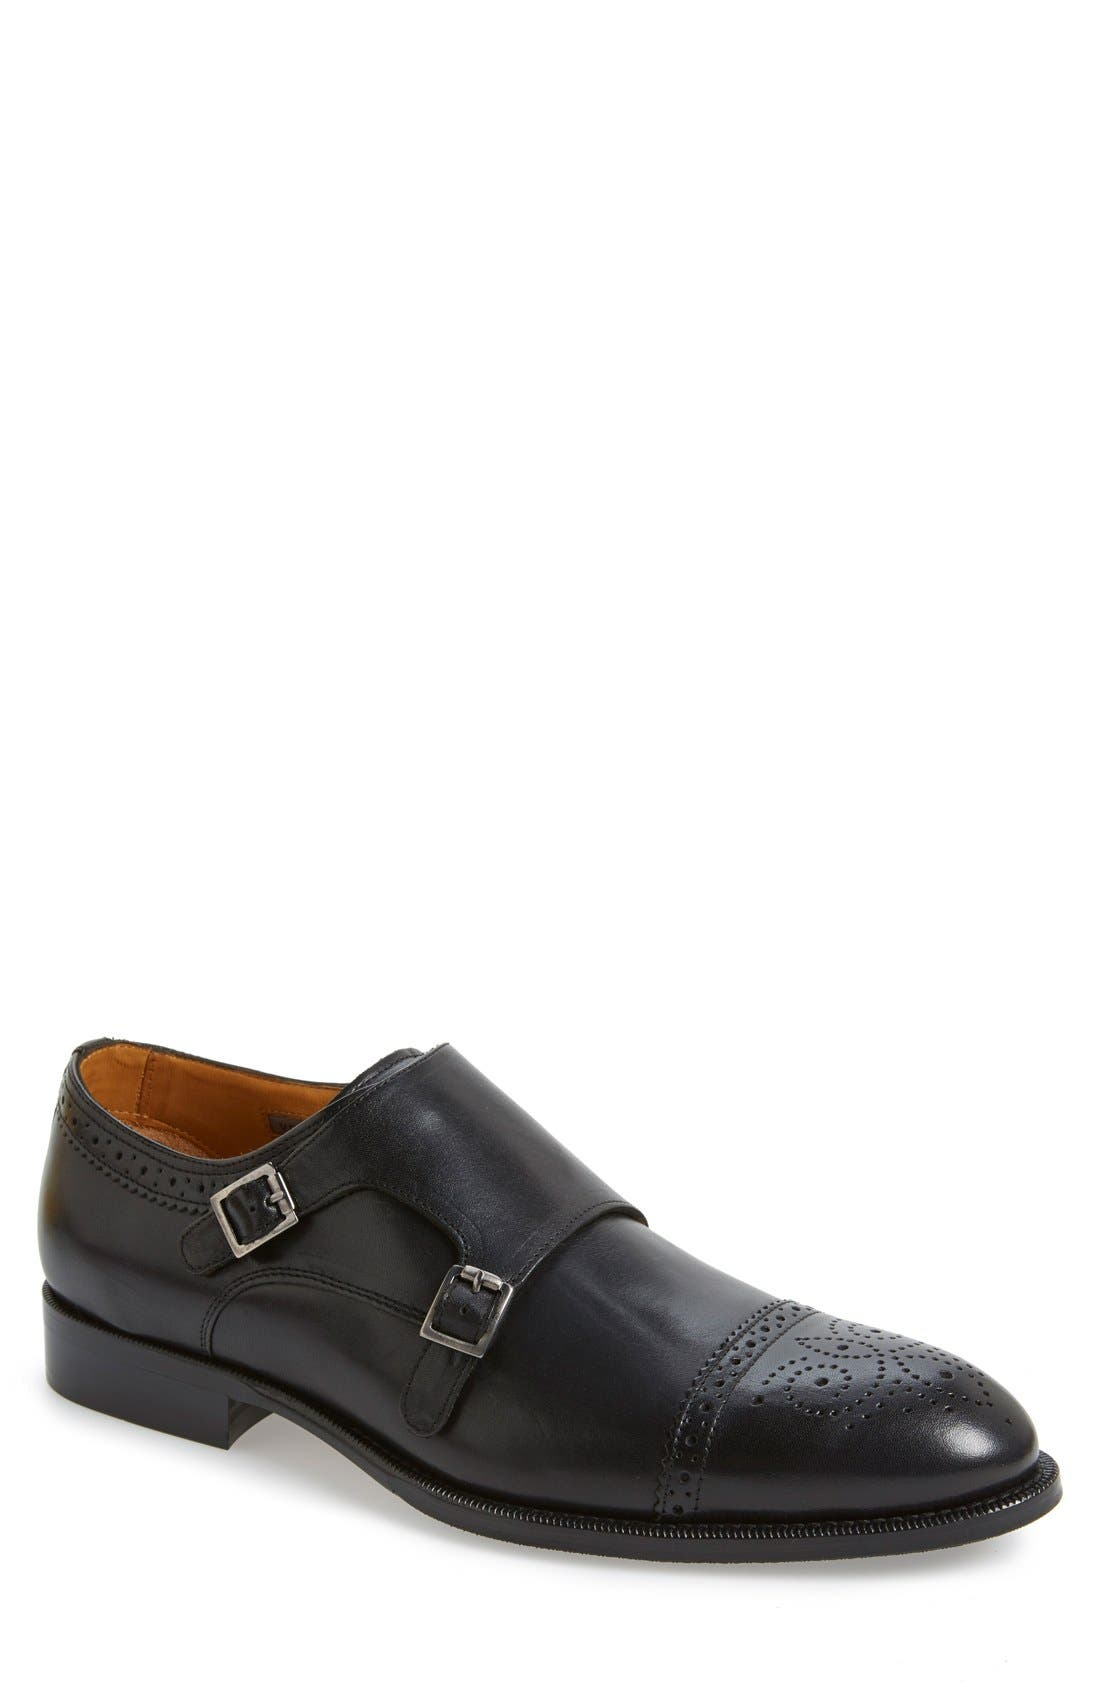 Alternate Image 1 Selected - Vince Camuto 'Briant' Double Monk Strap Shoe (Men)